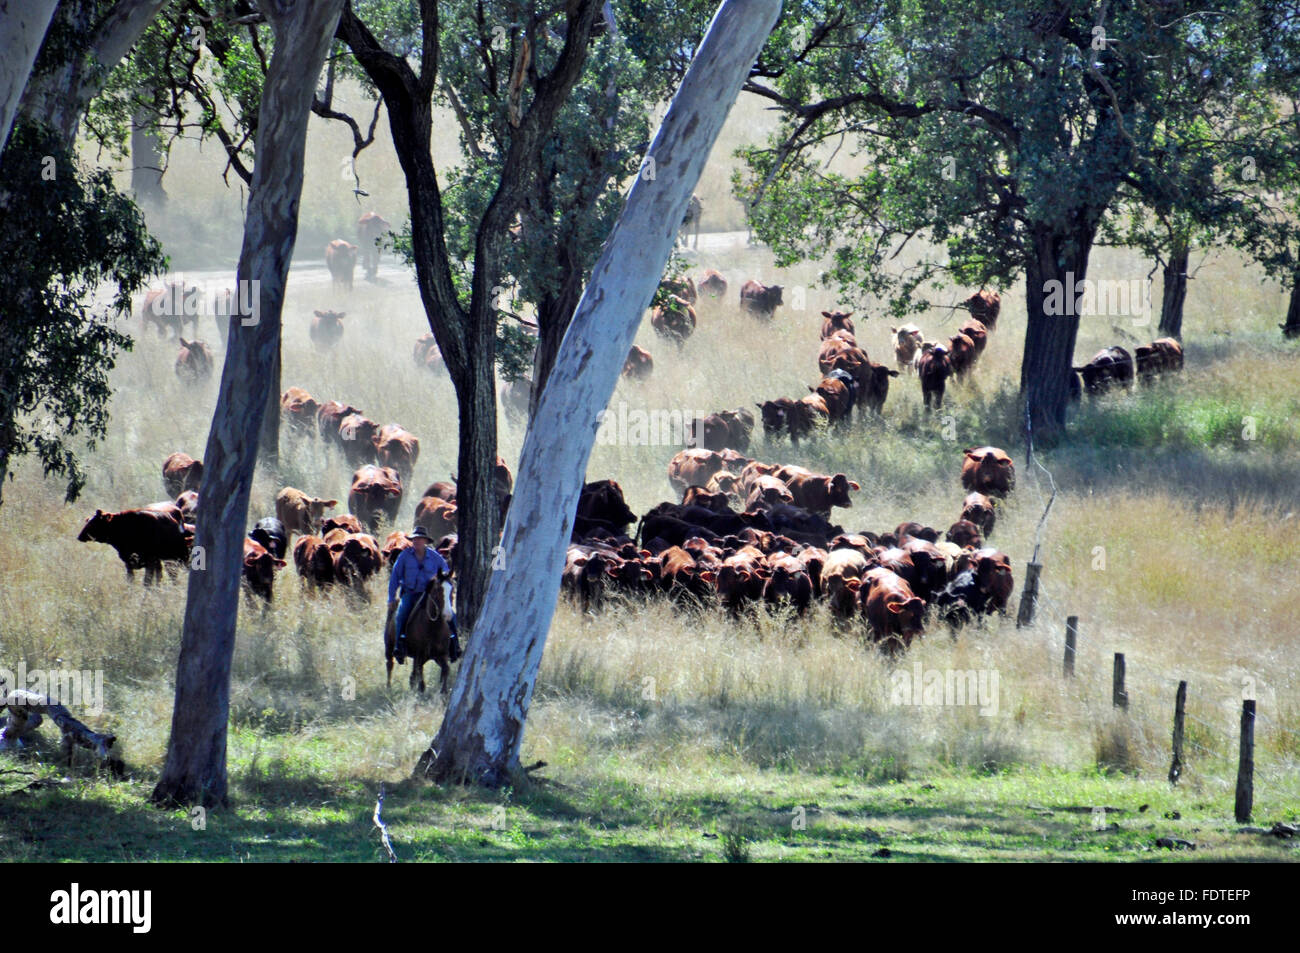 CATTLE MUSTER IN OUTBACK AUSTRALIA - Stock Image